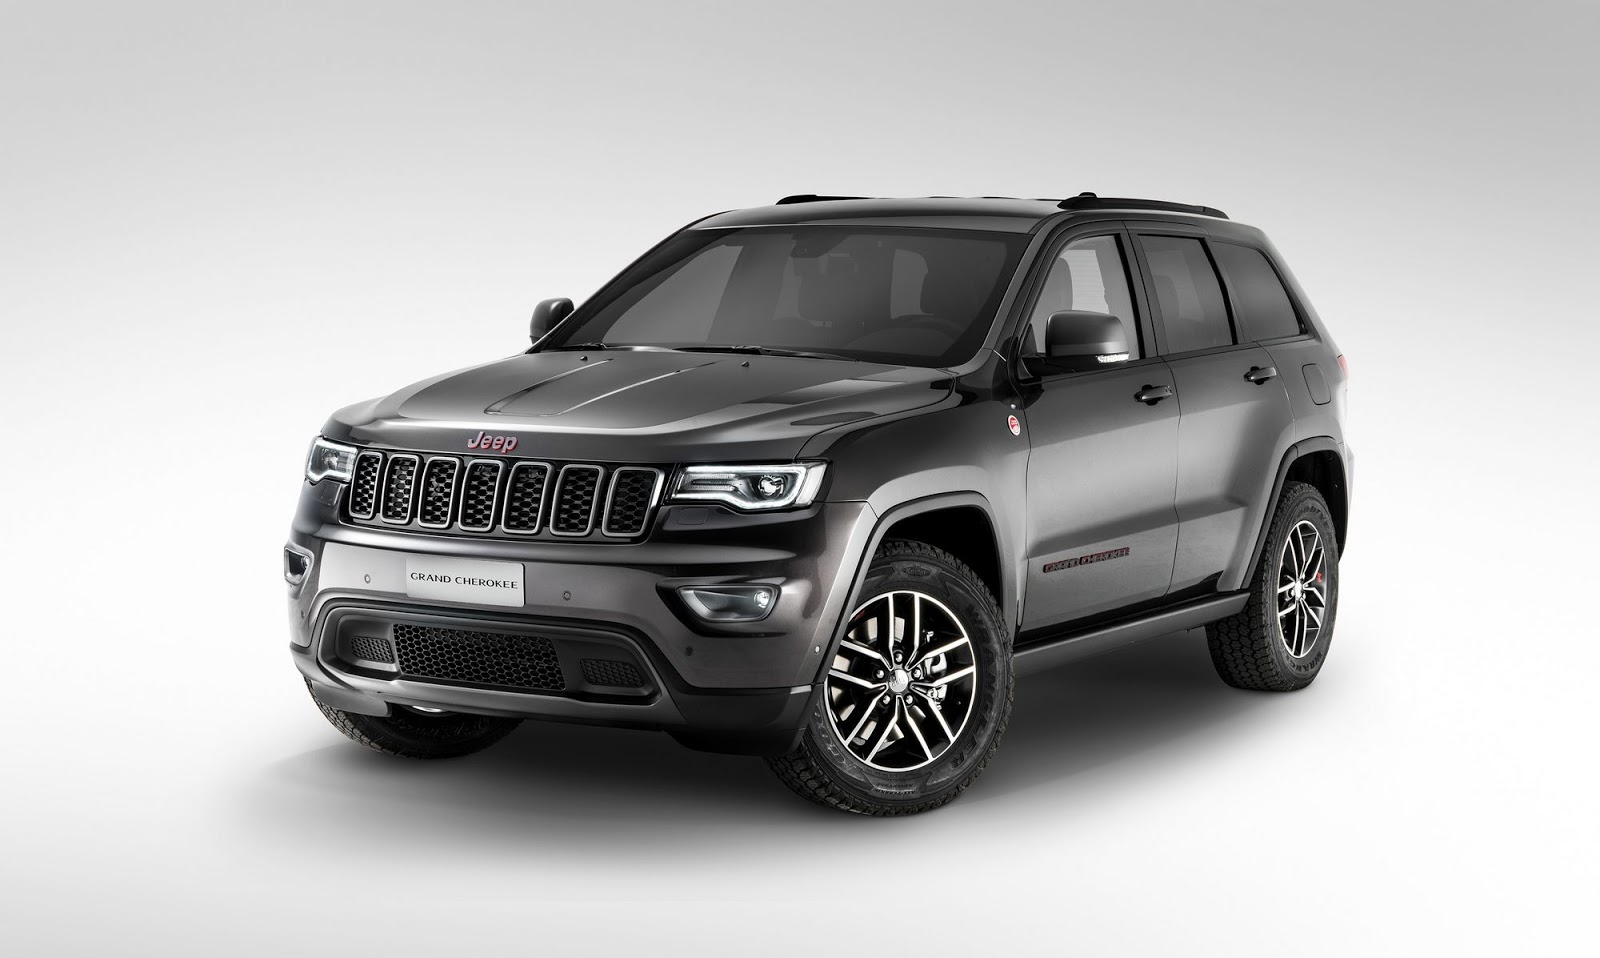 New Jeep Renegade >> 2017 Grand Cherokee Headlines Jeep Paris Auto Show Line-Up